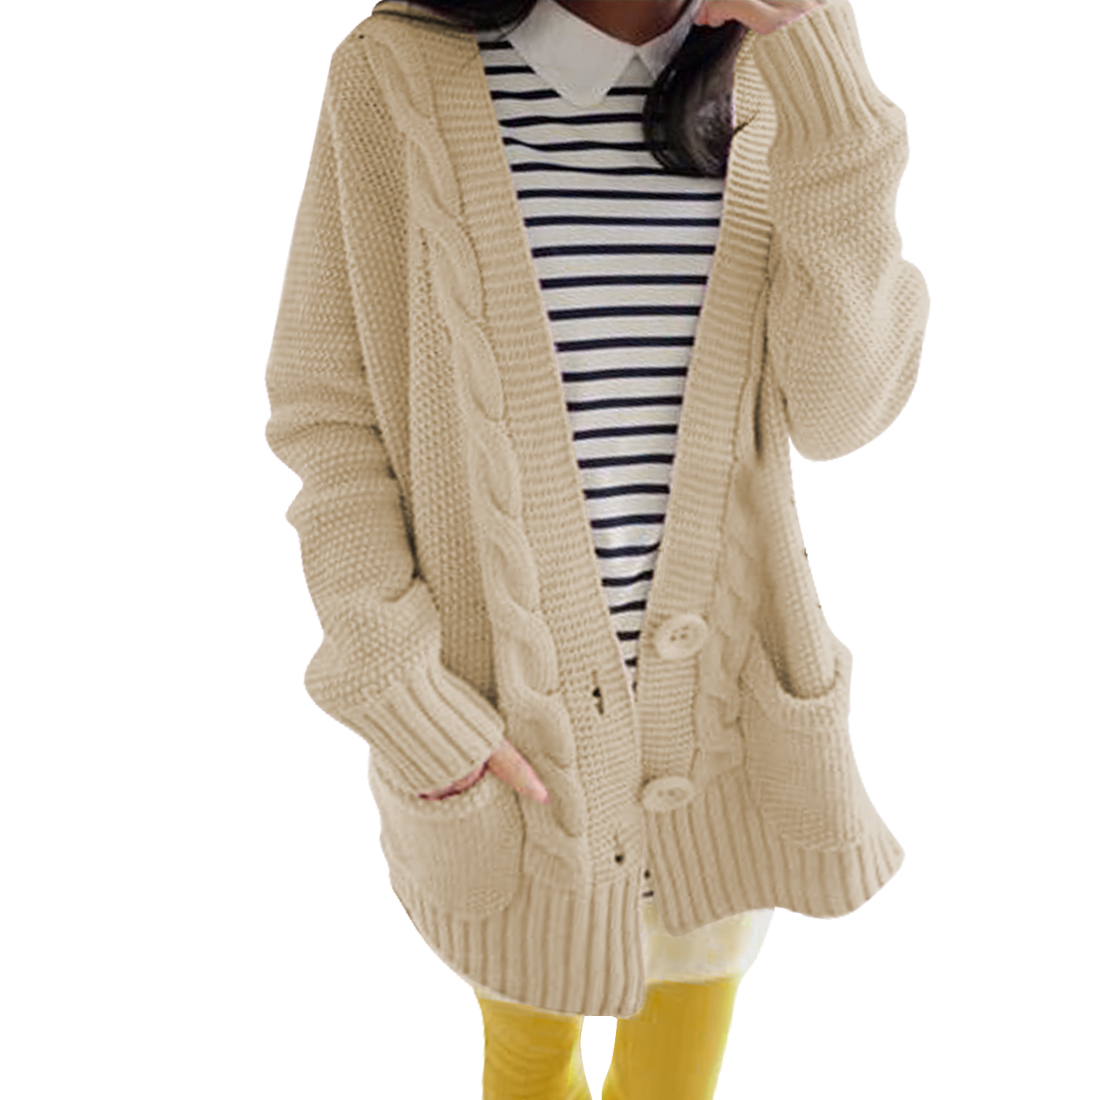 Women Button Front Long Sleeve Beige Knit Cardigan Swaeter M